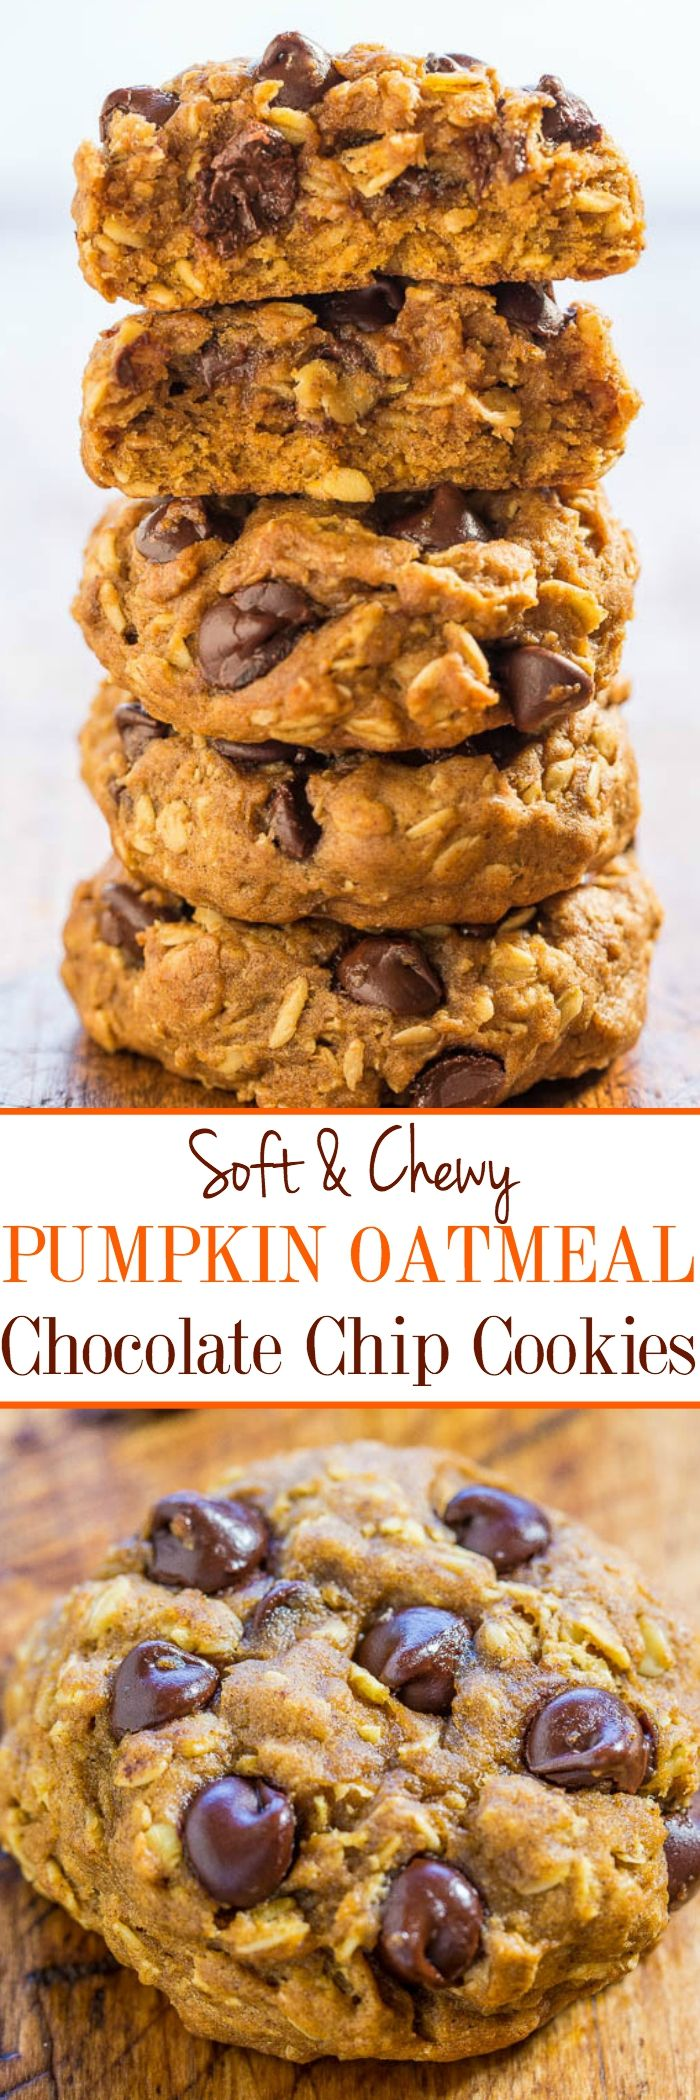 Soft and Chewy Pumpkin Oatmeal Chocolate Chip Cookies -  A thick, hearty oatmeal cookie and a soft, chewy pumpkin cookie all in one!! Lots of chocolate, not at all cakey, easy, and your new favorite pumpkin cookie recipe!!: